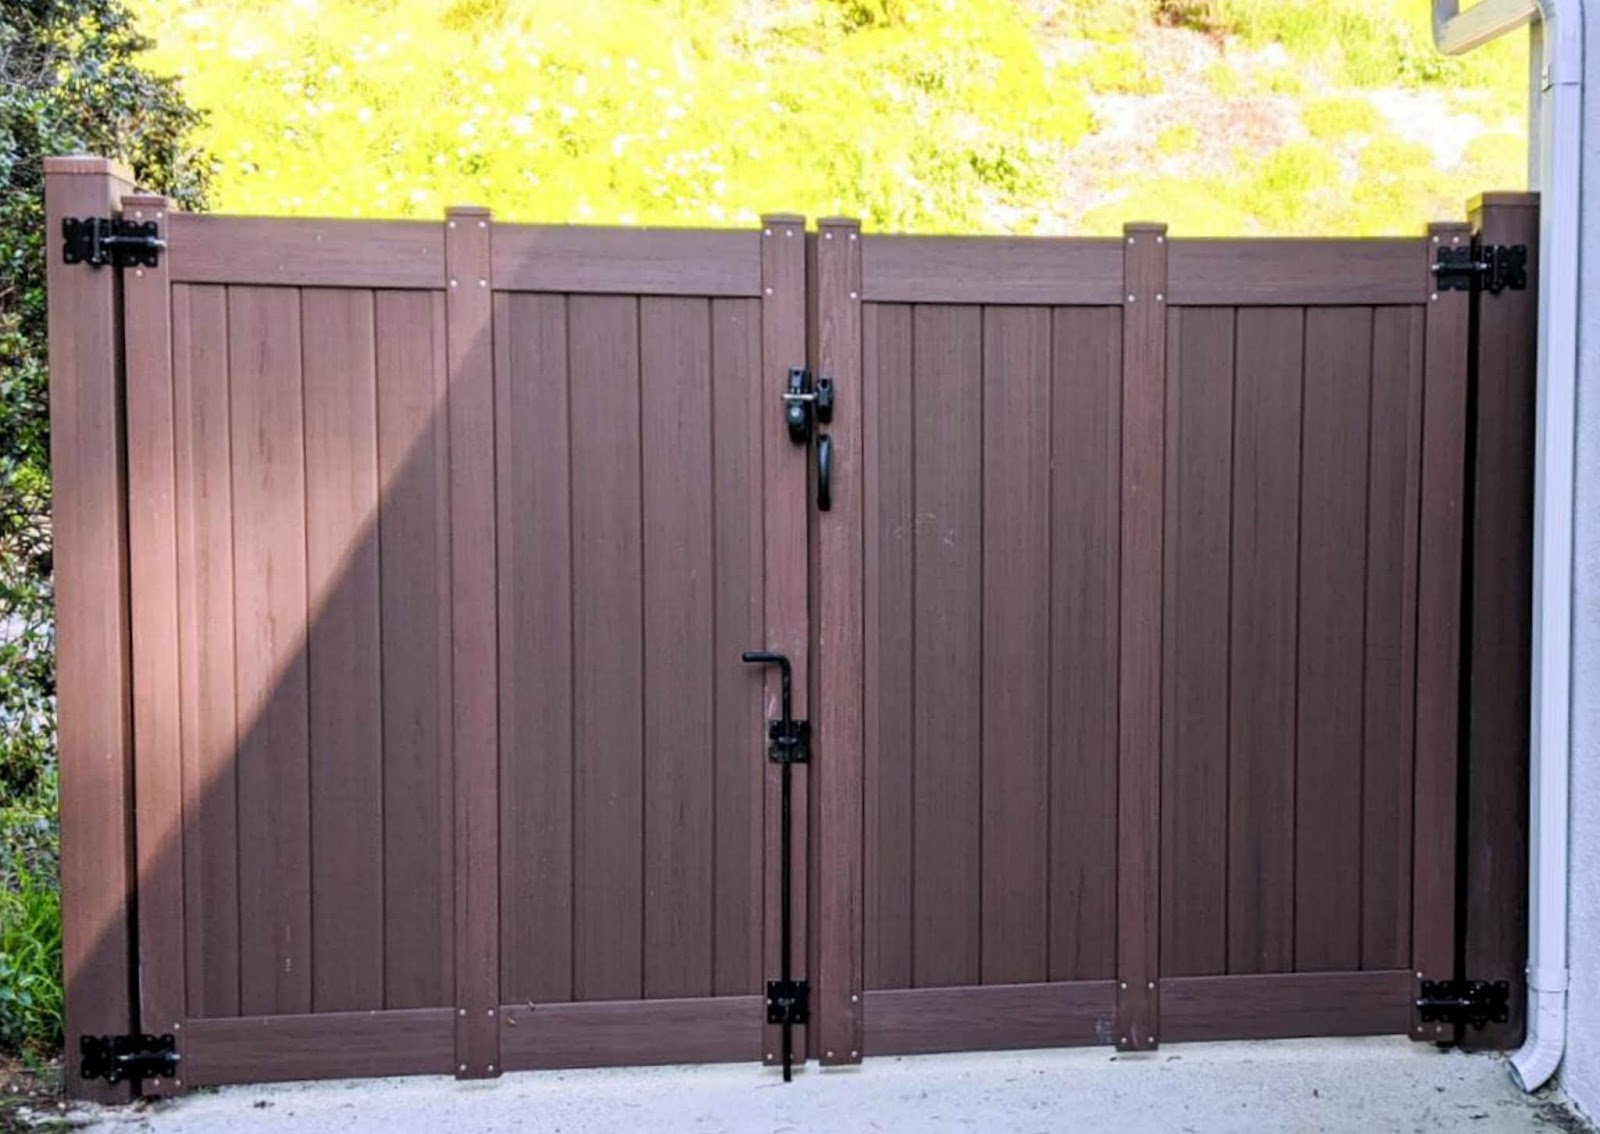 bufftech vinyl privacy fence gate driveway curb appeal exterior home improvement modern craftsman ranch house architecture